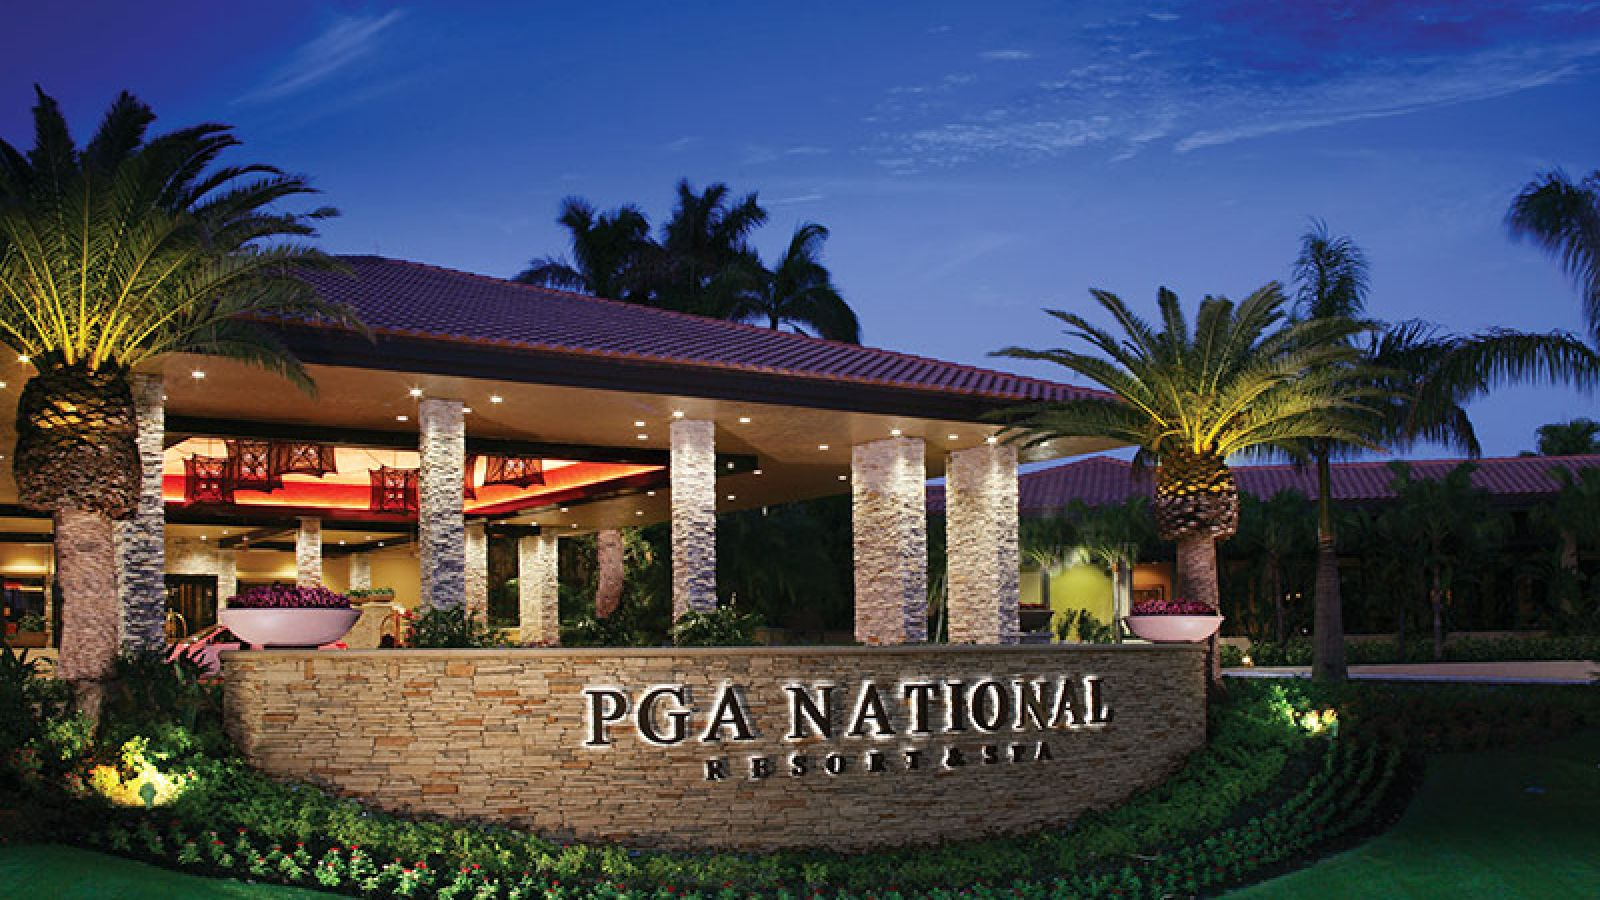 PGA National Resort & Spa:  image courtesy of PGA National Resort & Spa